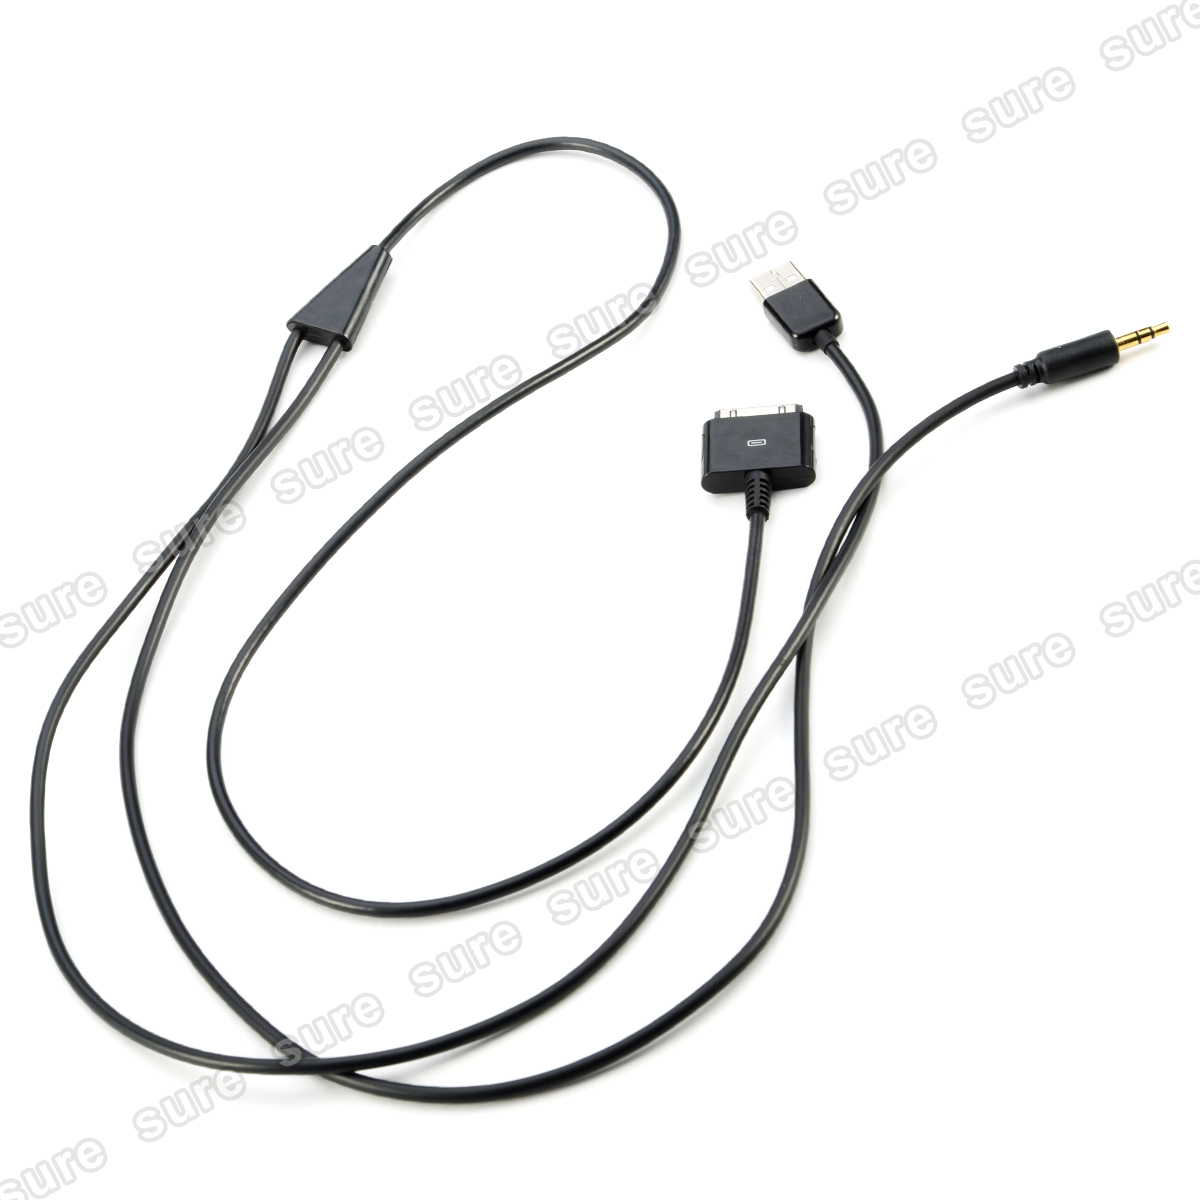 Black 3 5mm Aux Usb Car Audio Cable For Apple Iphone